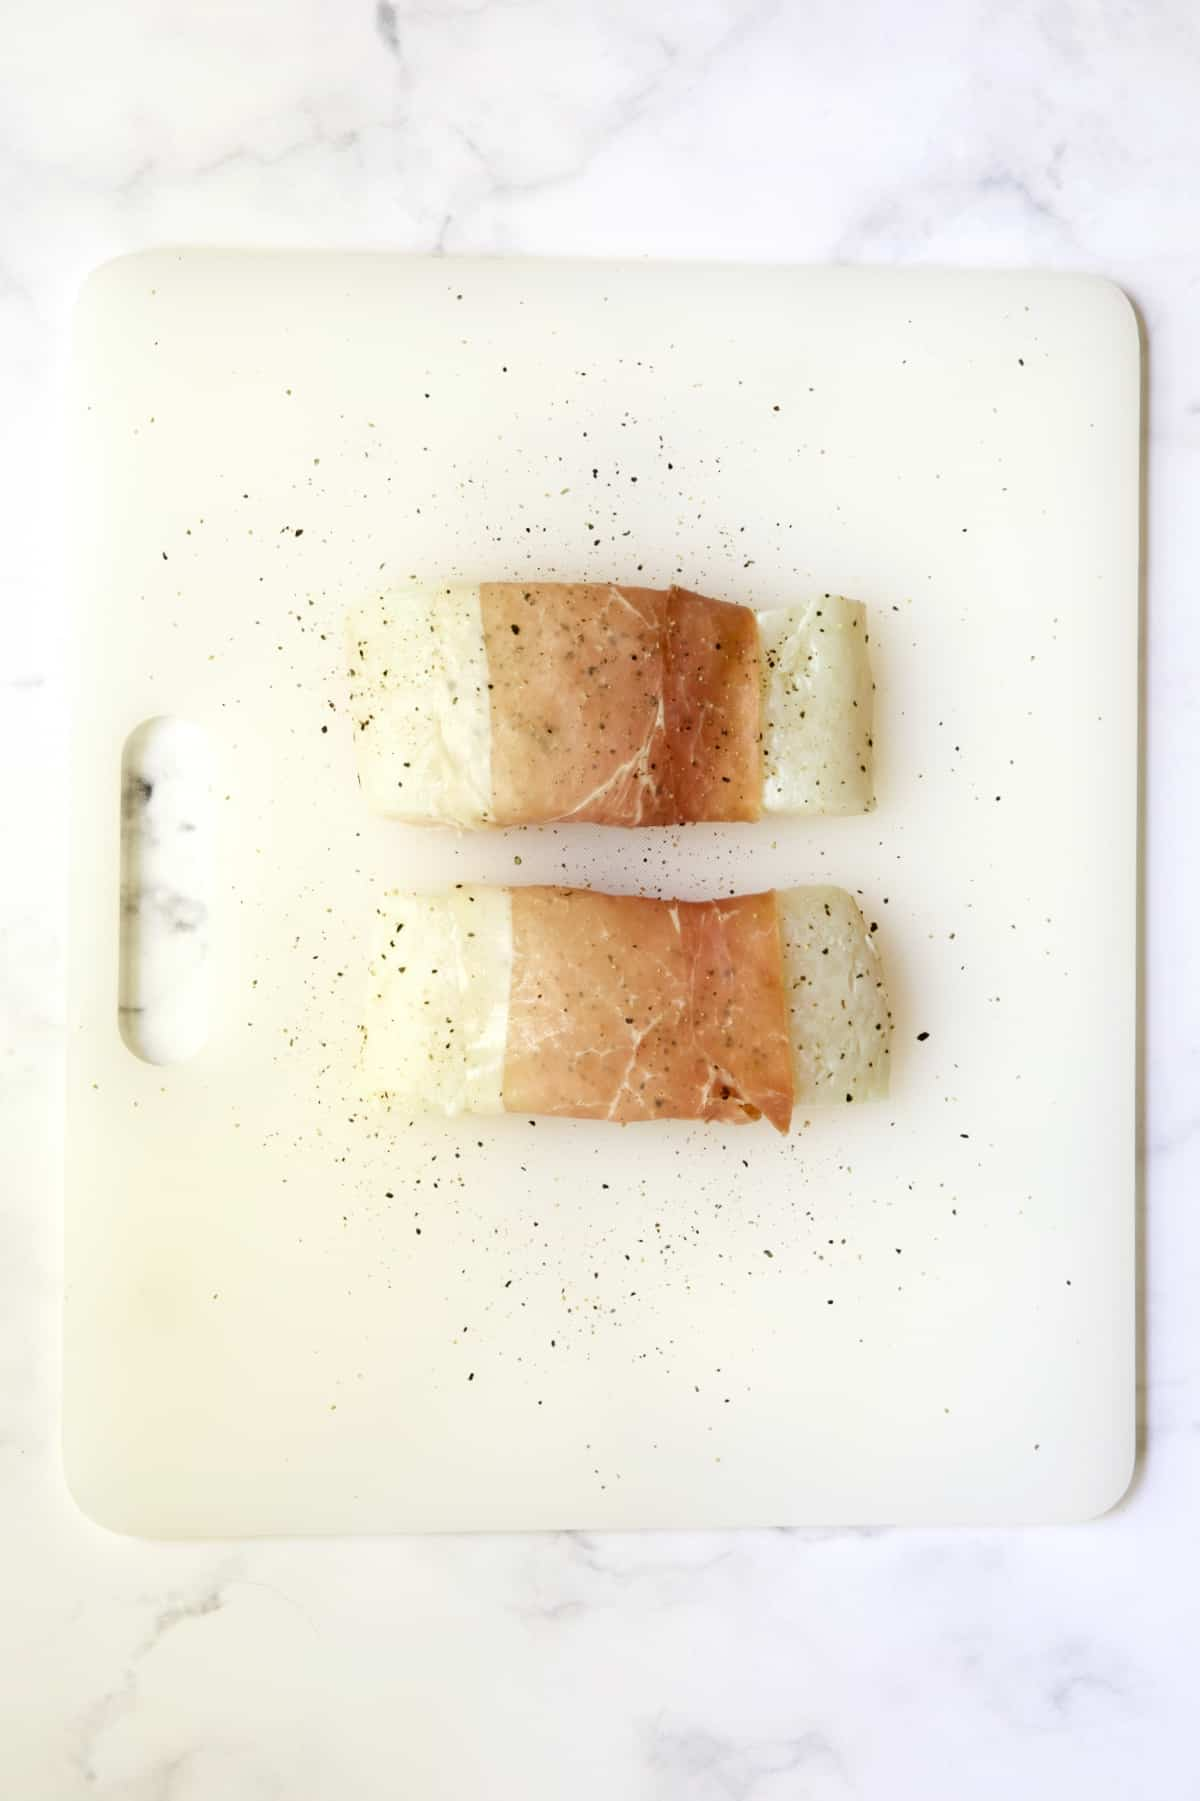 Two prosciutto-wrapped halibut fillets seasoned with pepper on a white plastic cutting board before being cooked.